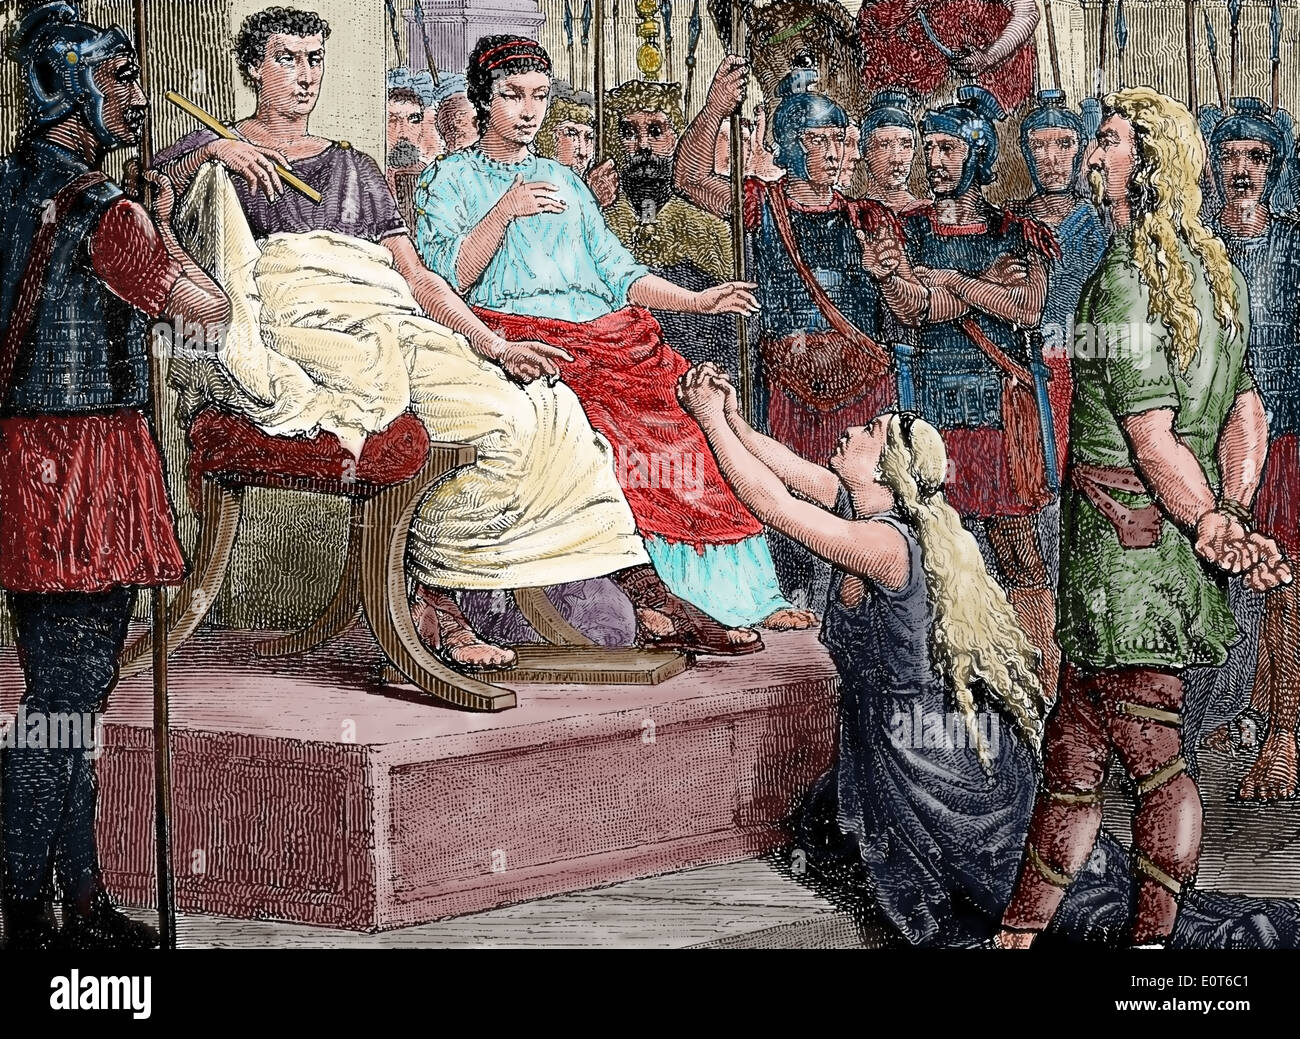 Caractacus( British chieftain of the Catuvellauni tribe) before the Emperor Claudius at Rome. Engraving.Color. - Stock Image